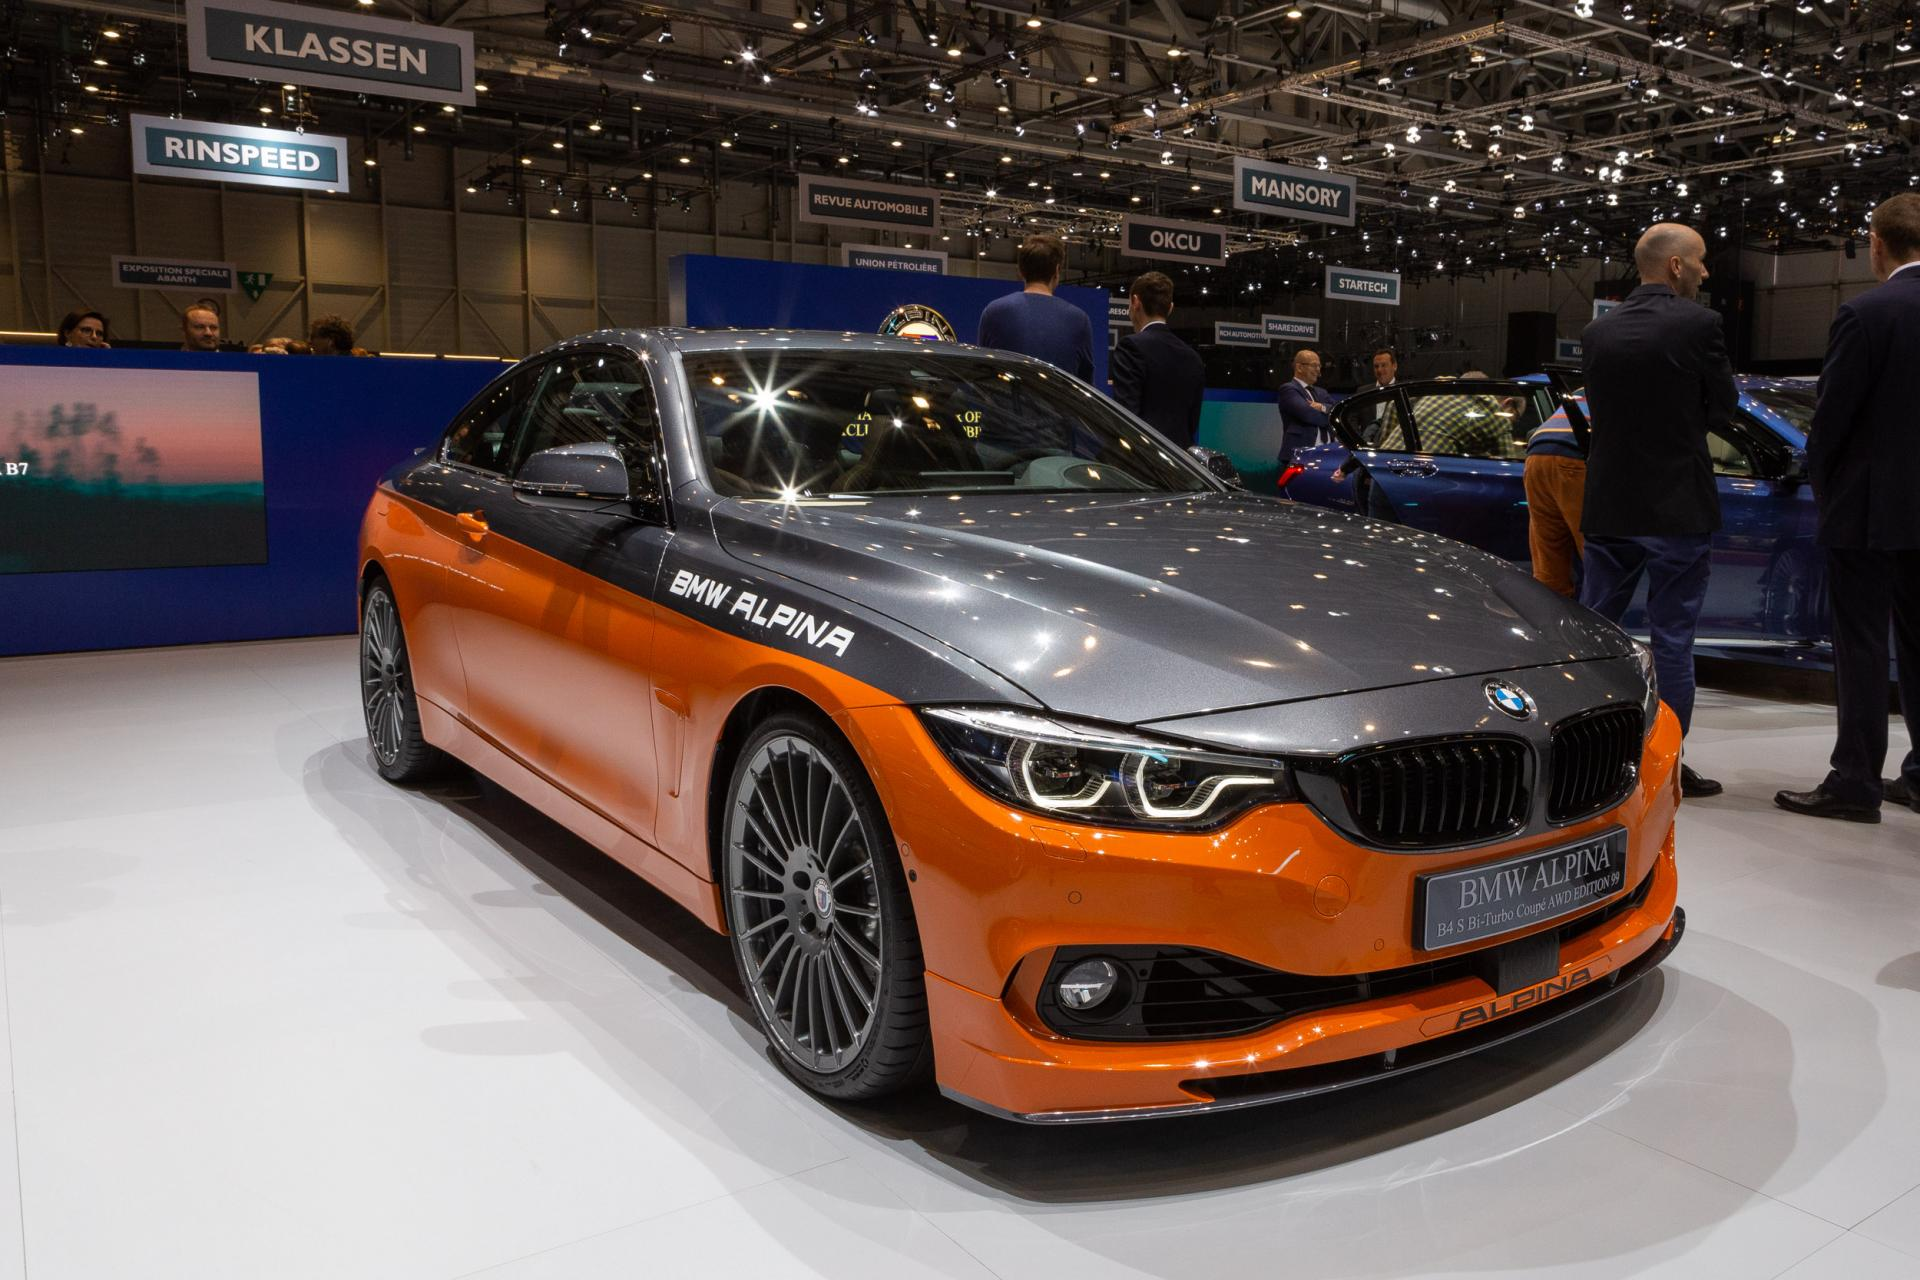 A glimpse of Geneva International Motor Show 2019 - PakWheels Blog